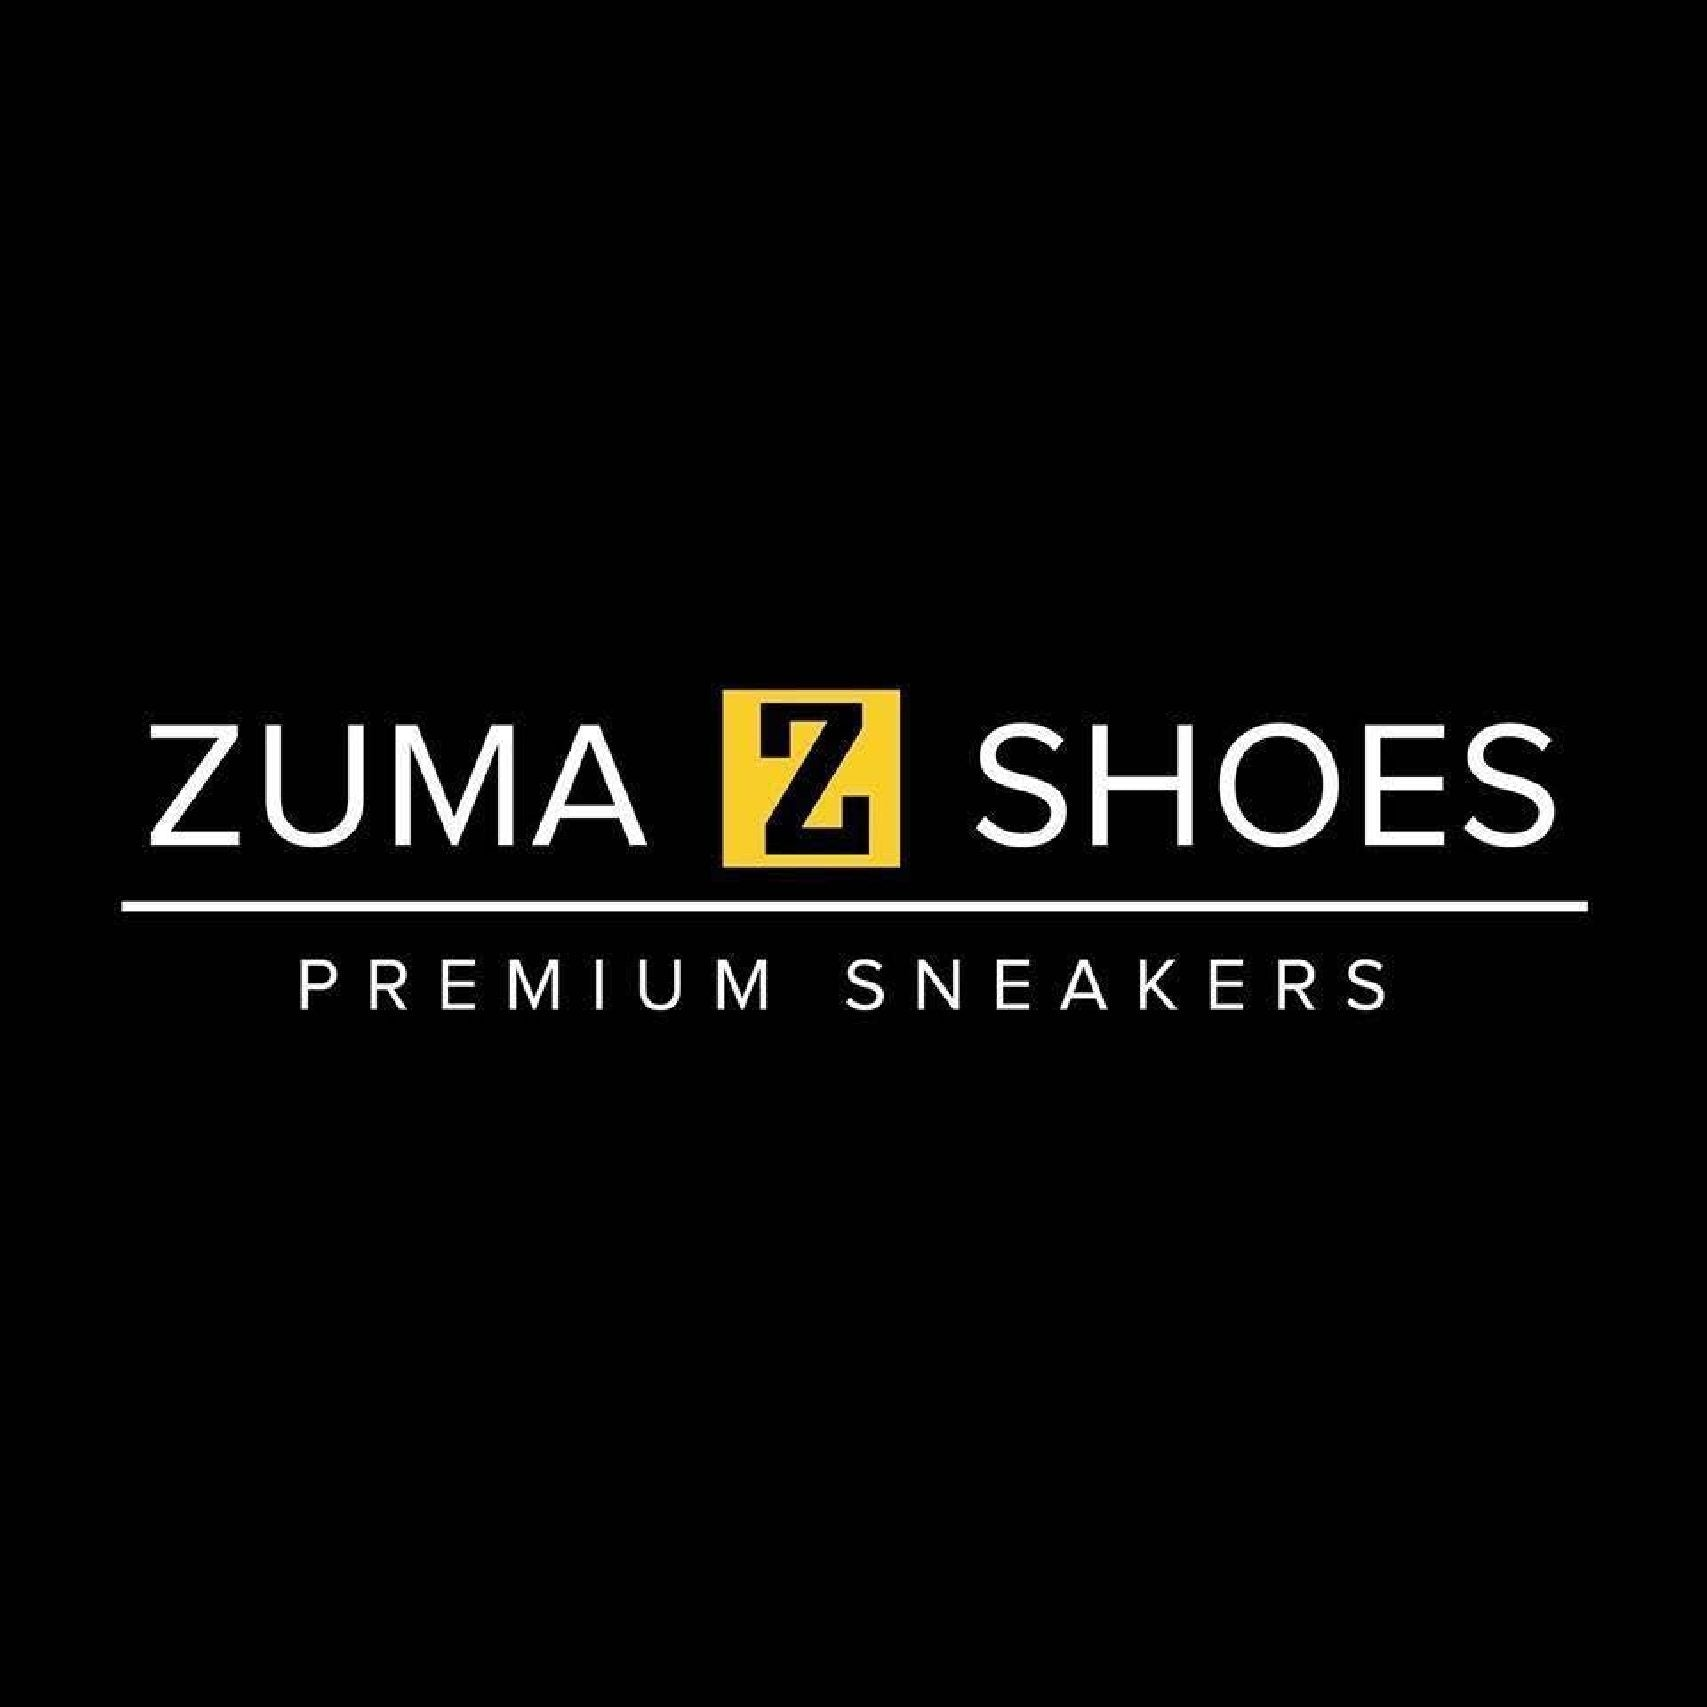 Zuma shoes, premium sneakers partnership with Fade Room